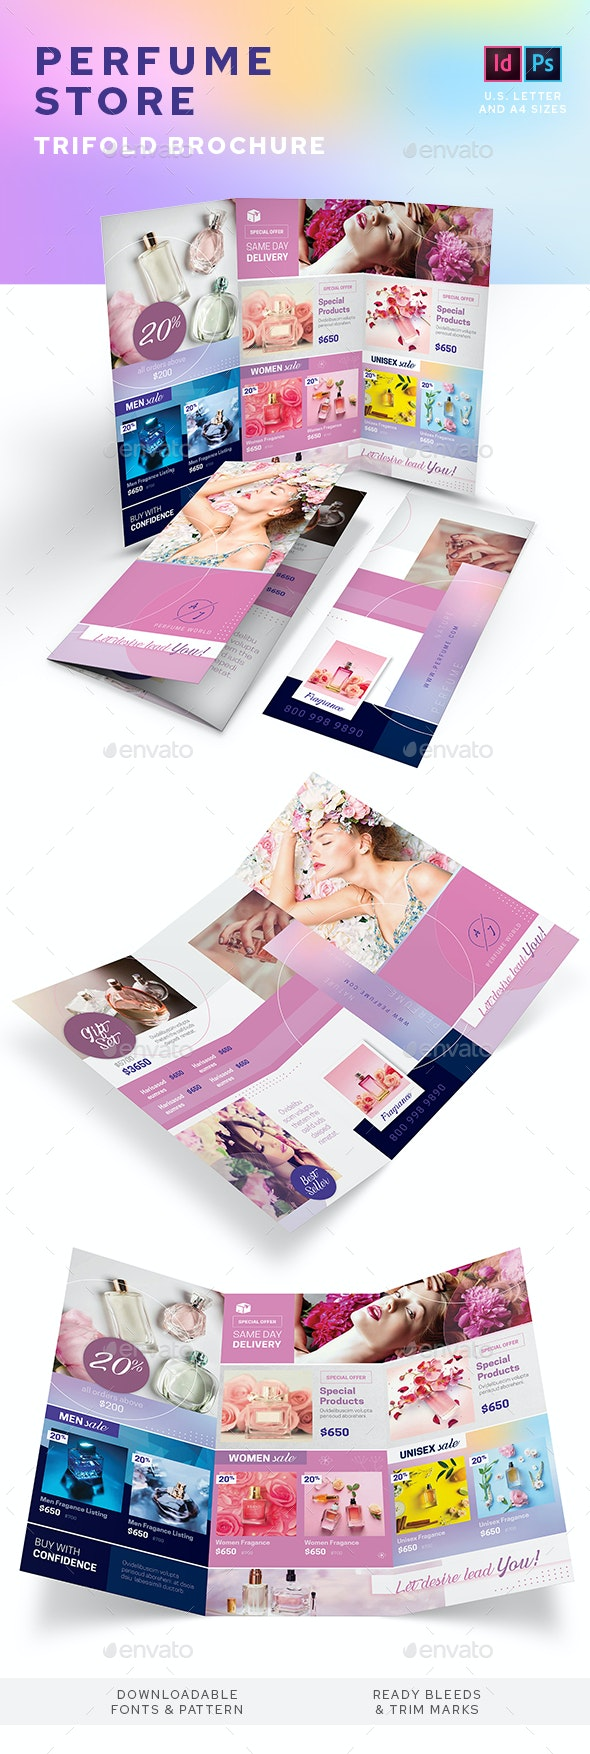 Perfume Store Trifold Brochure - Informational Brochures